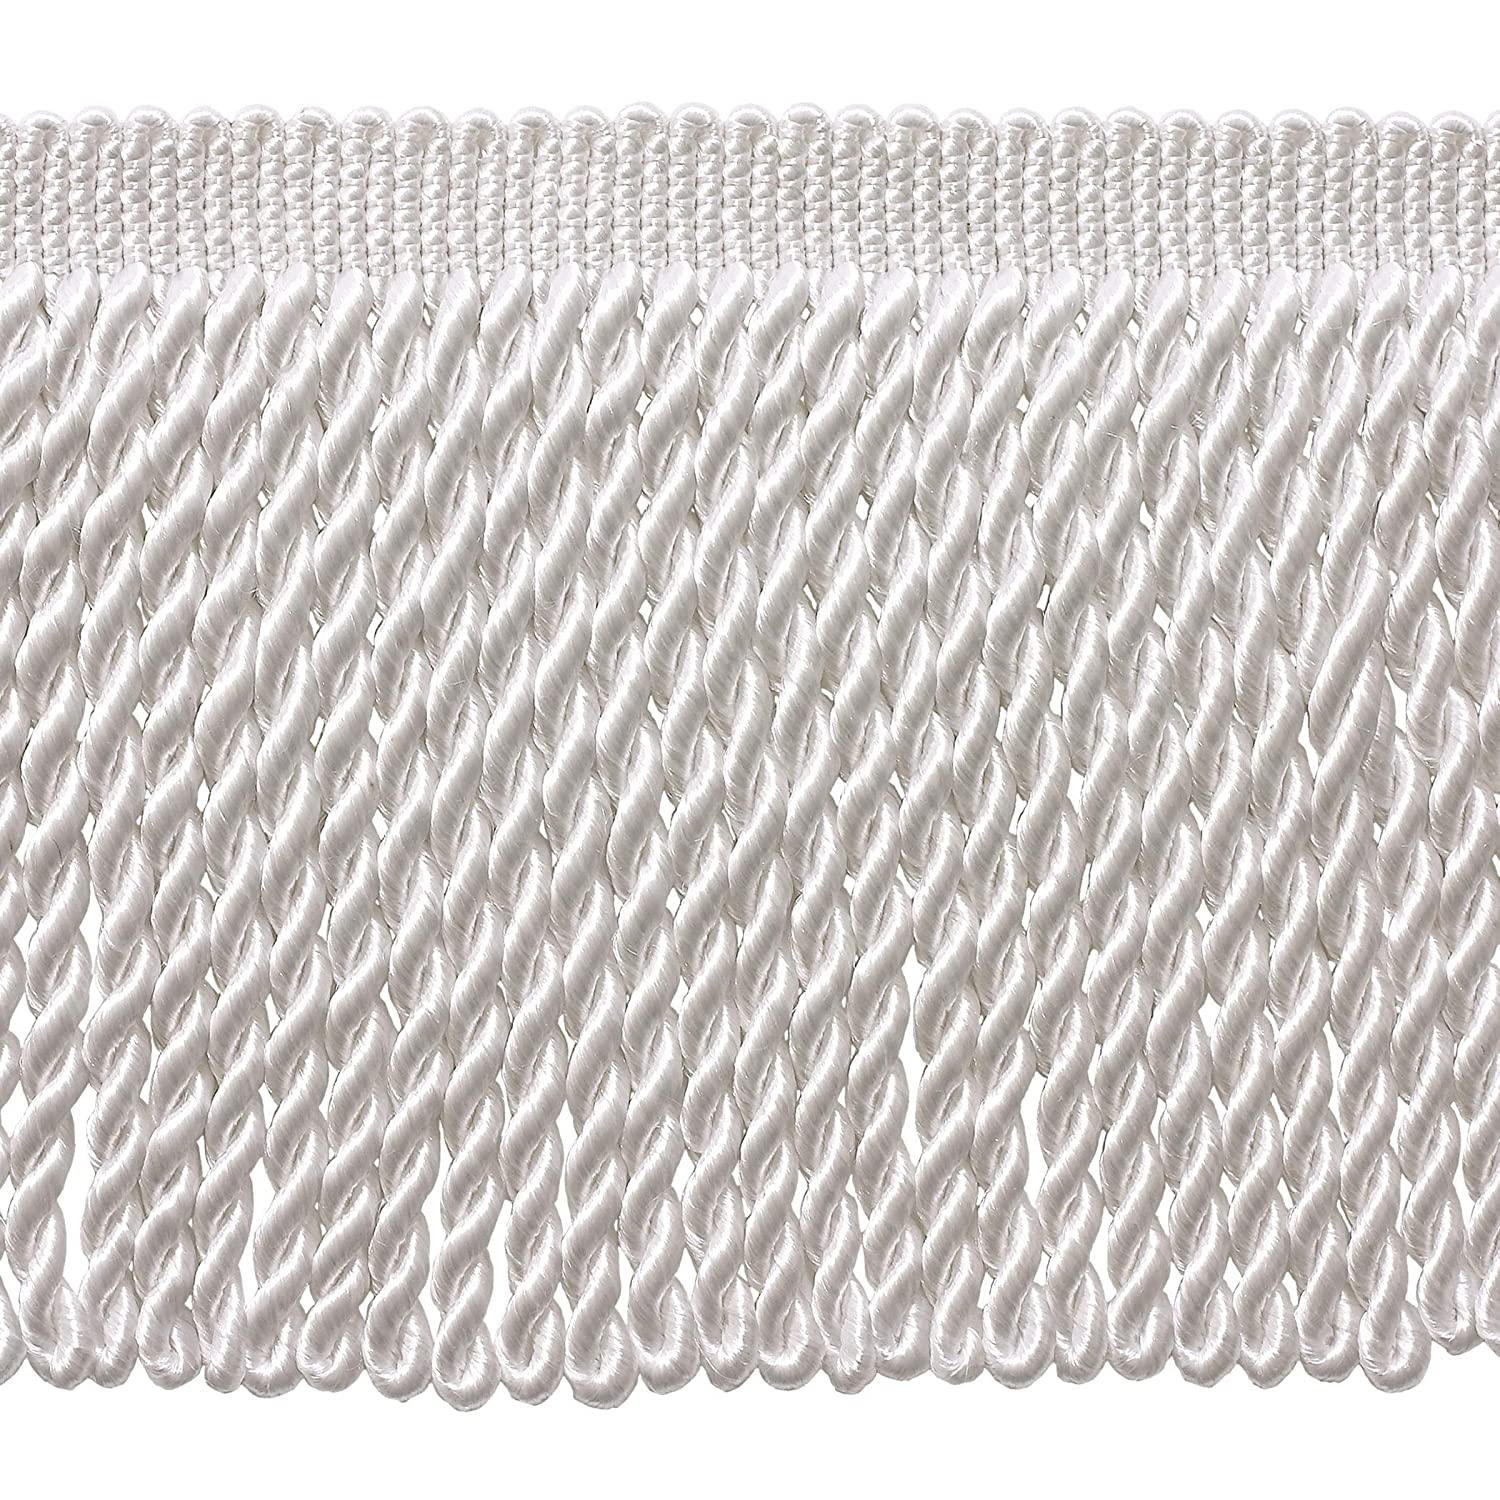 A1 Sold By the Yard 6 Inch Long WHITE Bullion Fringe Trim Style BFS6 Color Basic Trim Collection